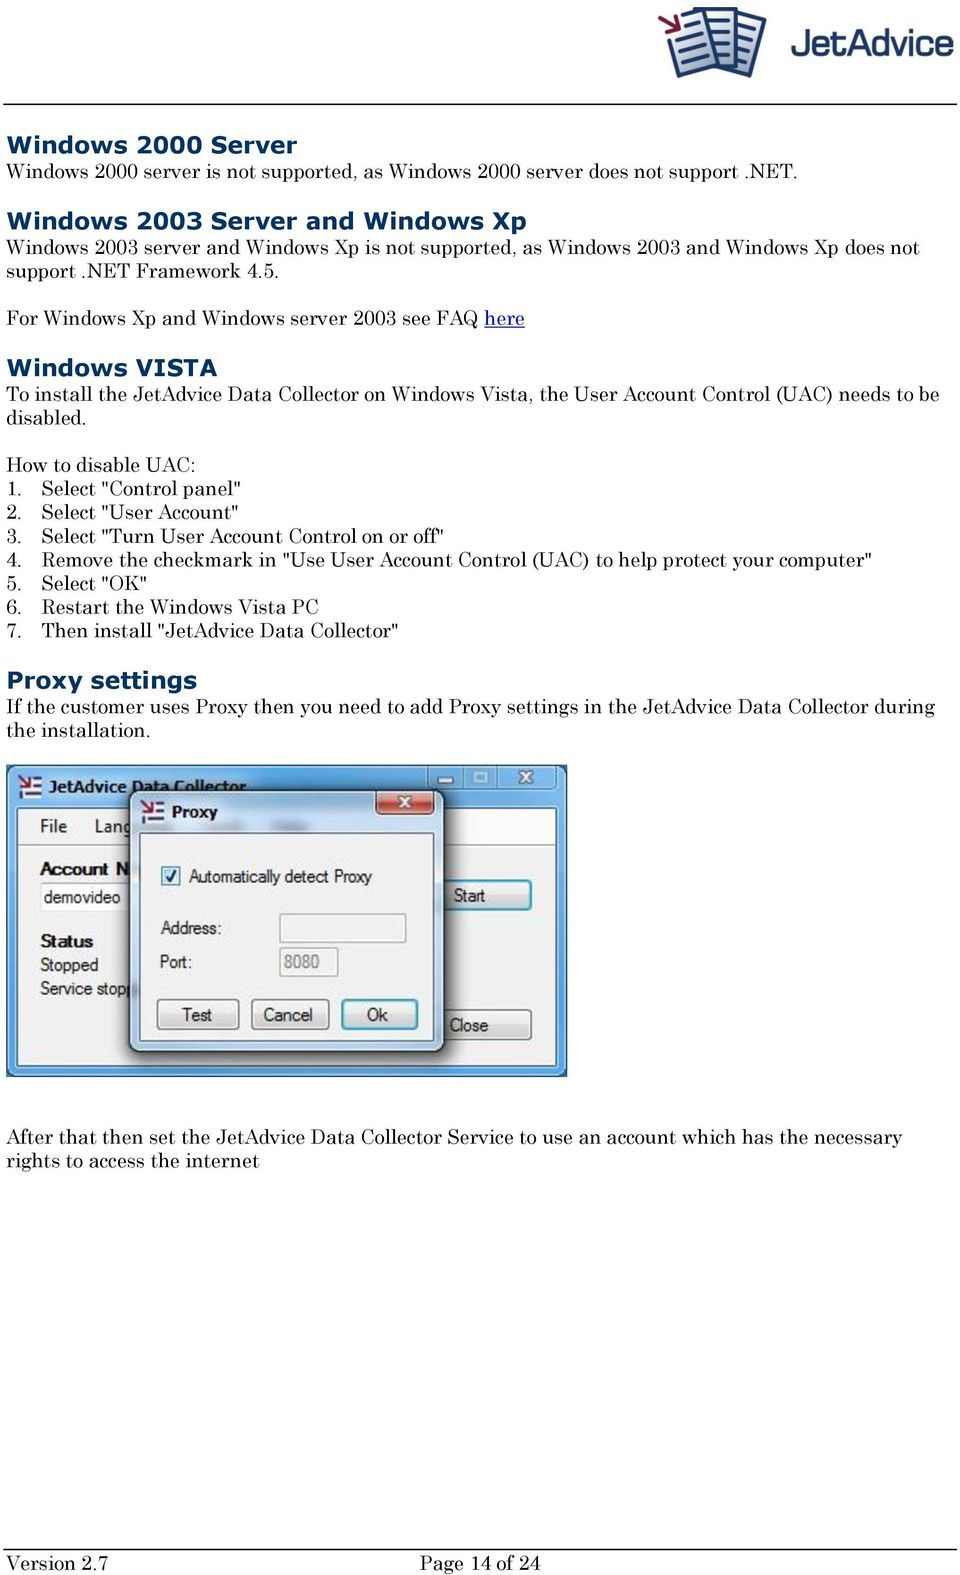 For Windows Xp and Windows server 2003 see FAQ here Windows VISTA To install the JetAdvice Data Collector on Windows Vista, the User Account Control (UAC) needs to be disabled. How to disable UAC: 1.